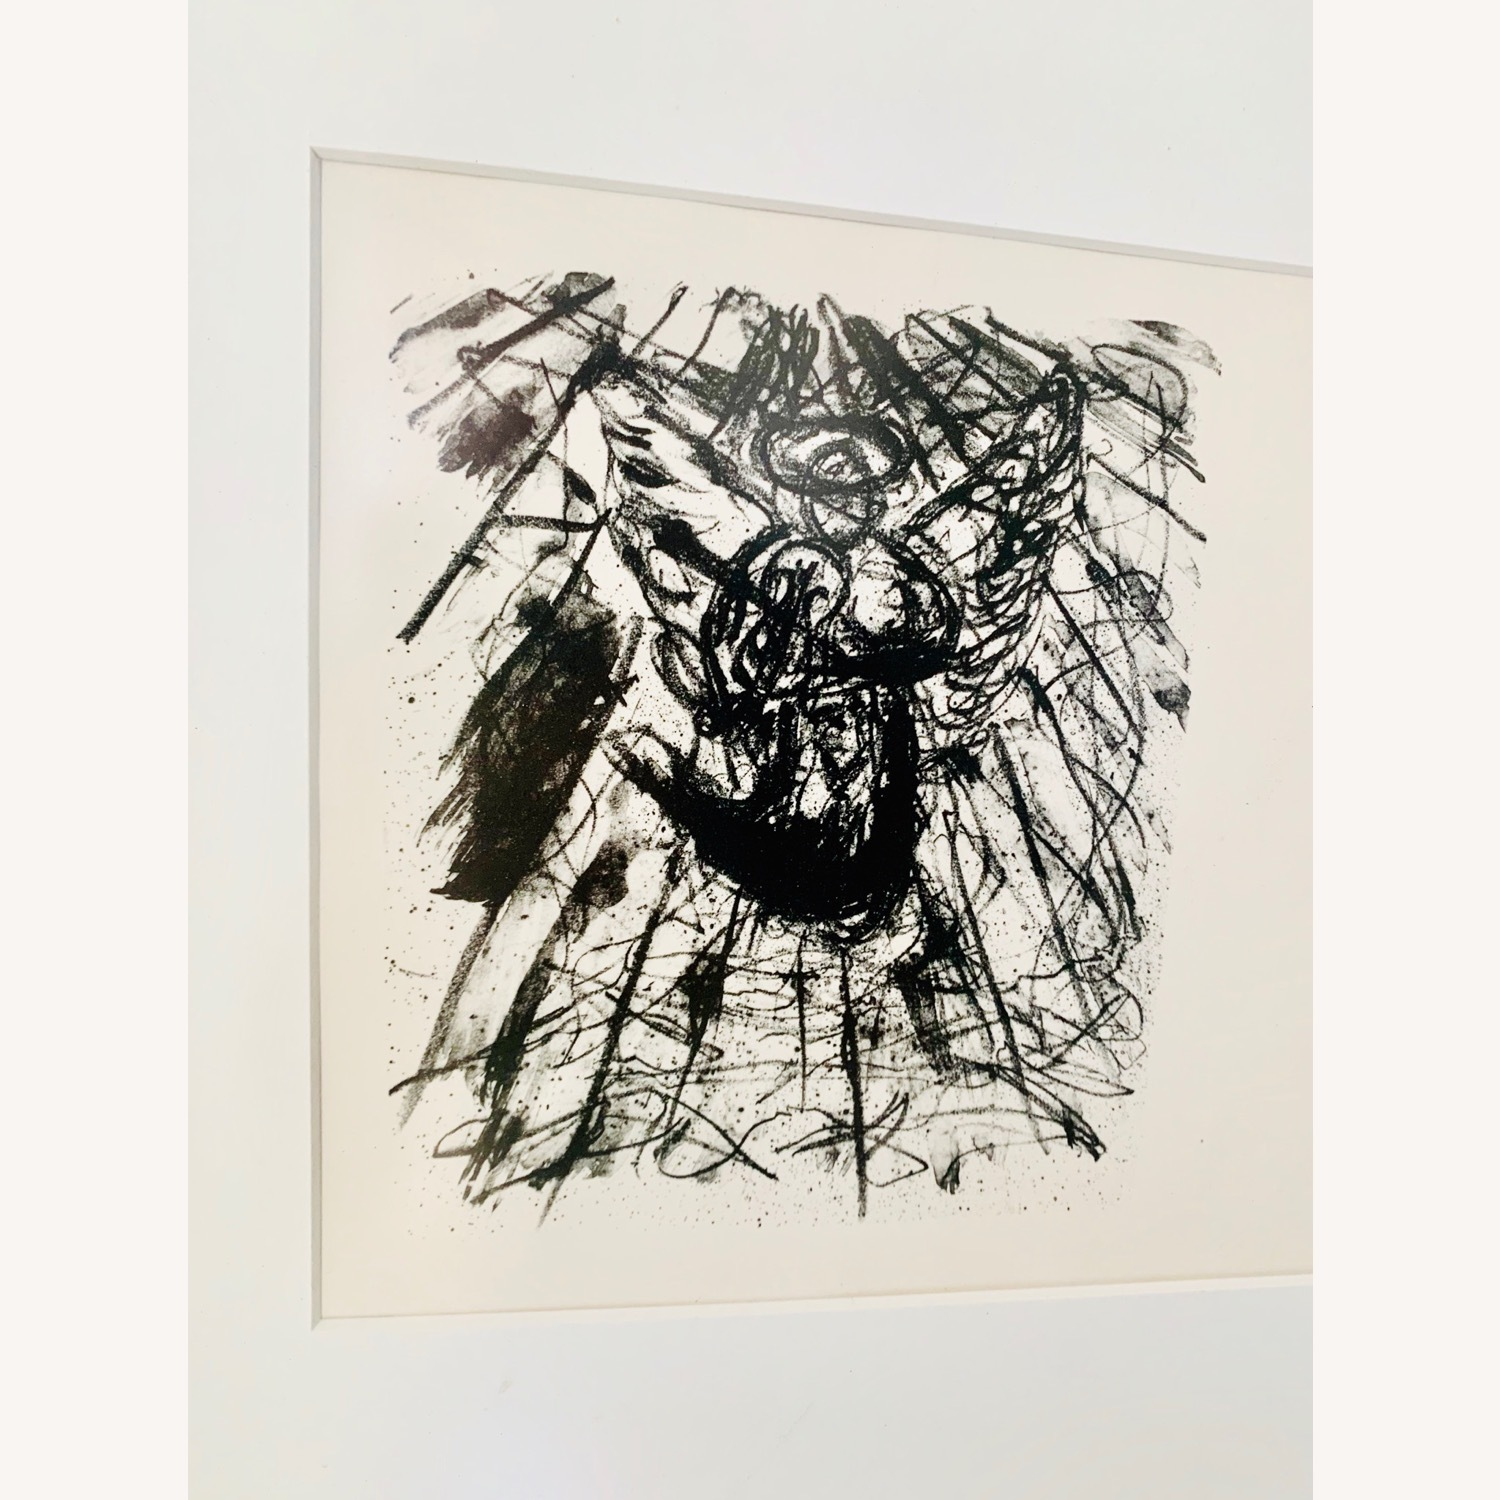 Vintage Triptych Abstract Drawings - image-4